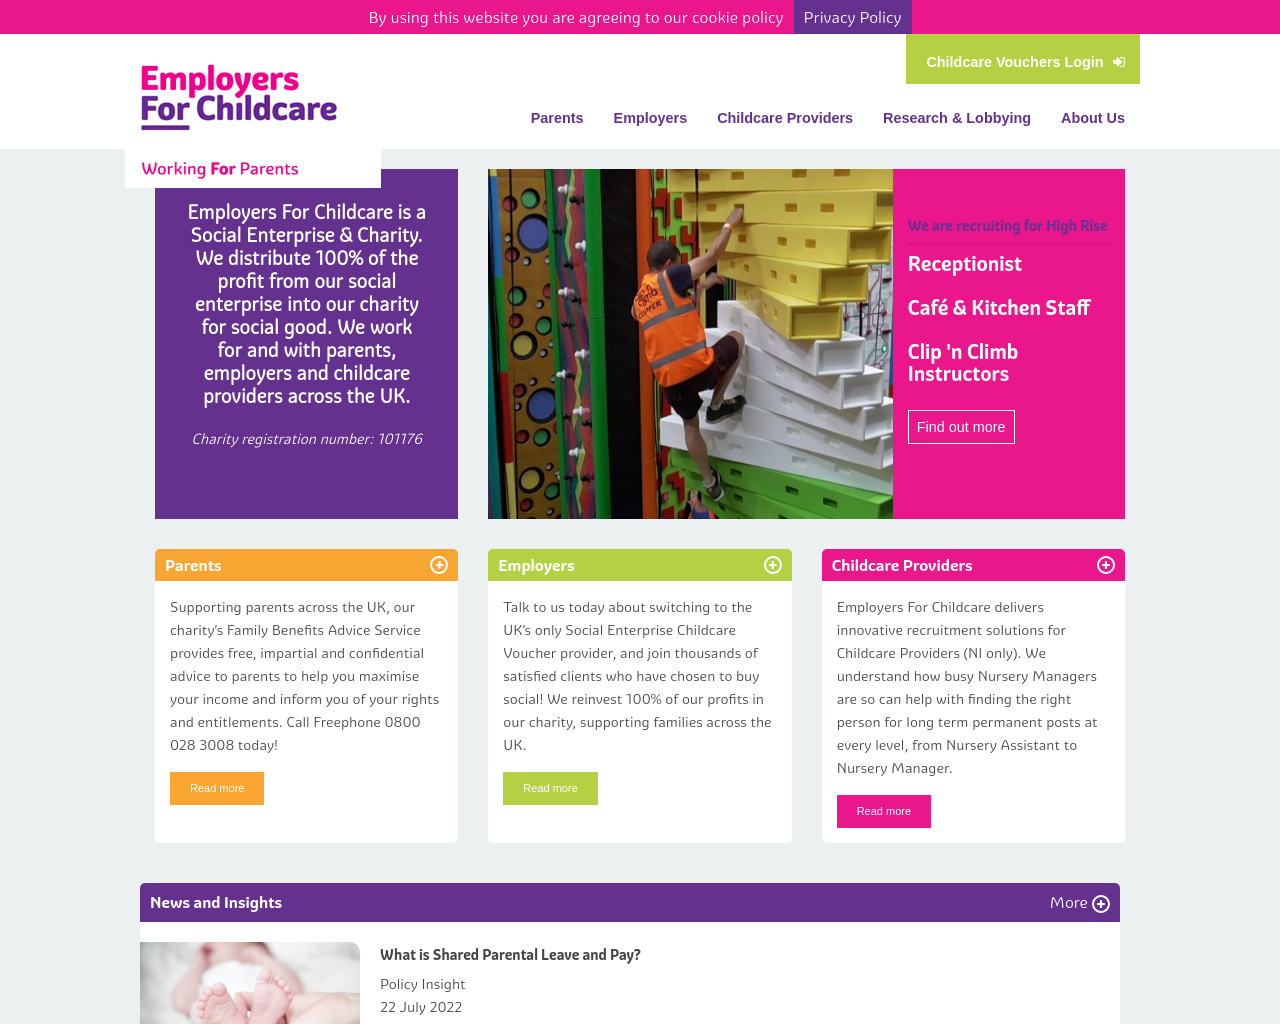 Employer For Childcare